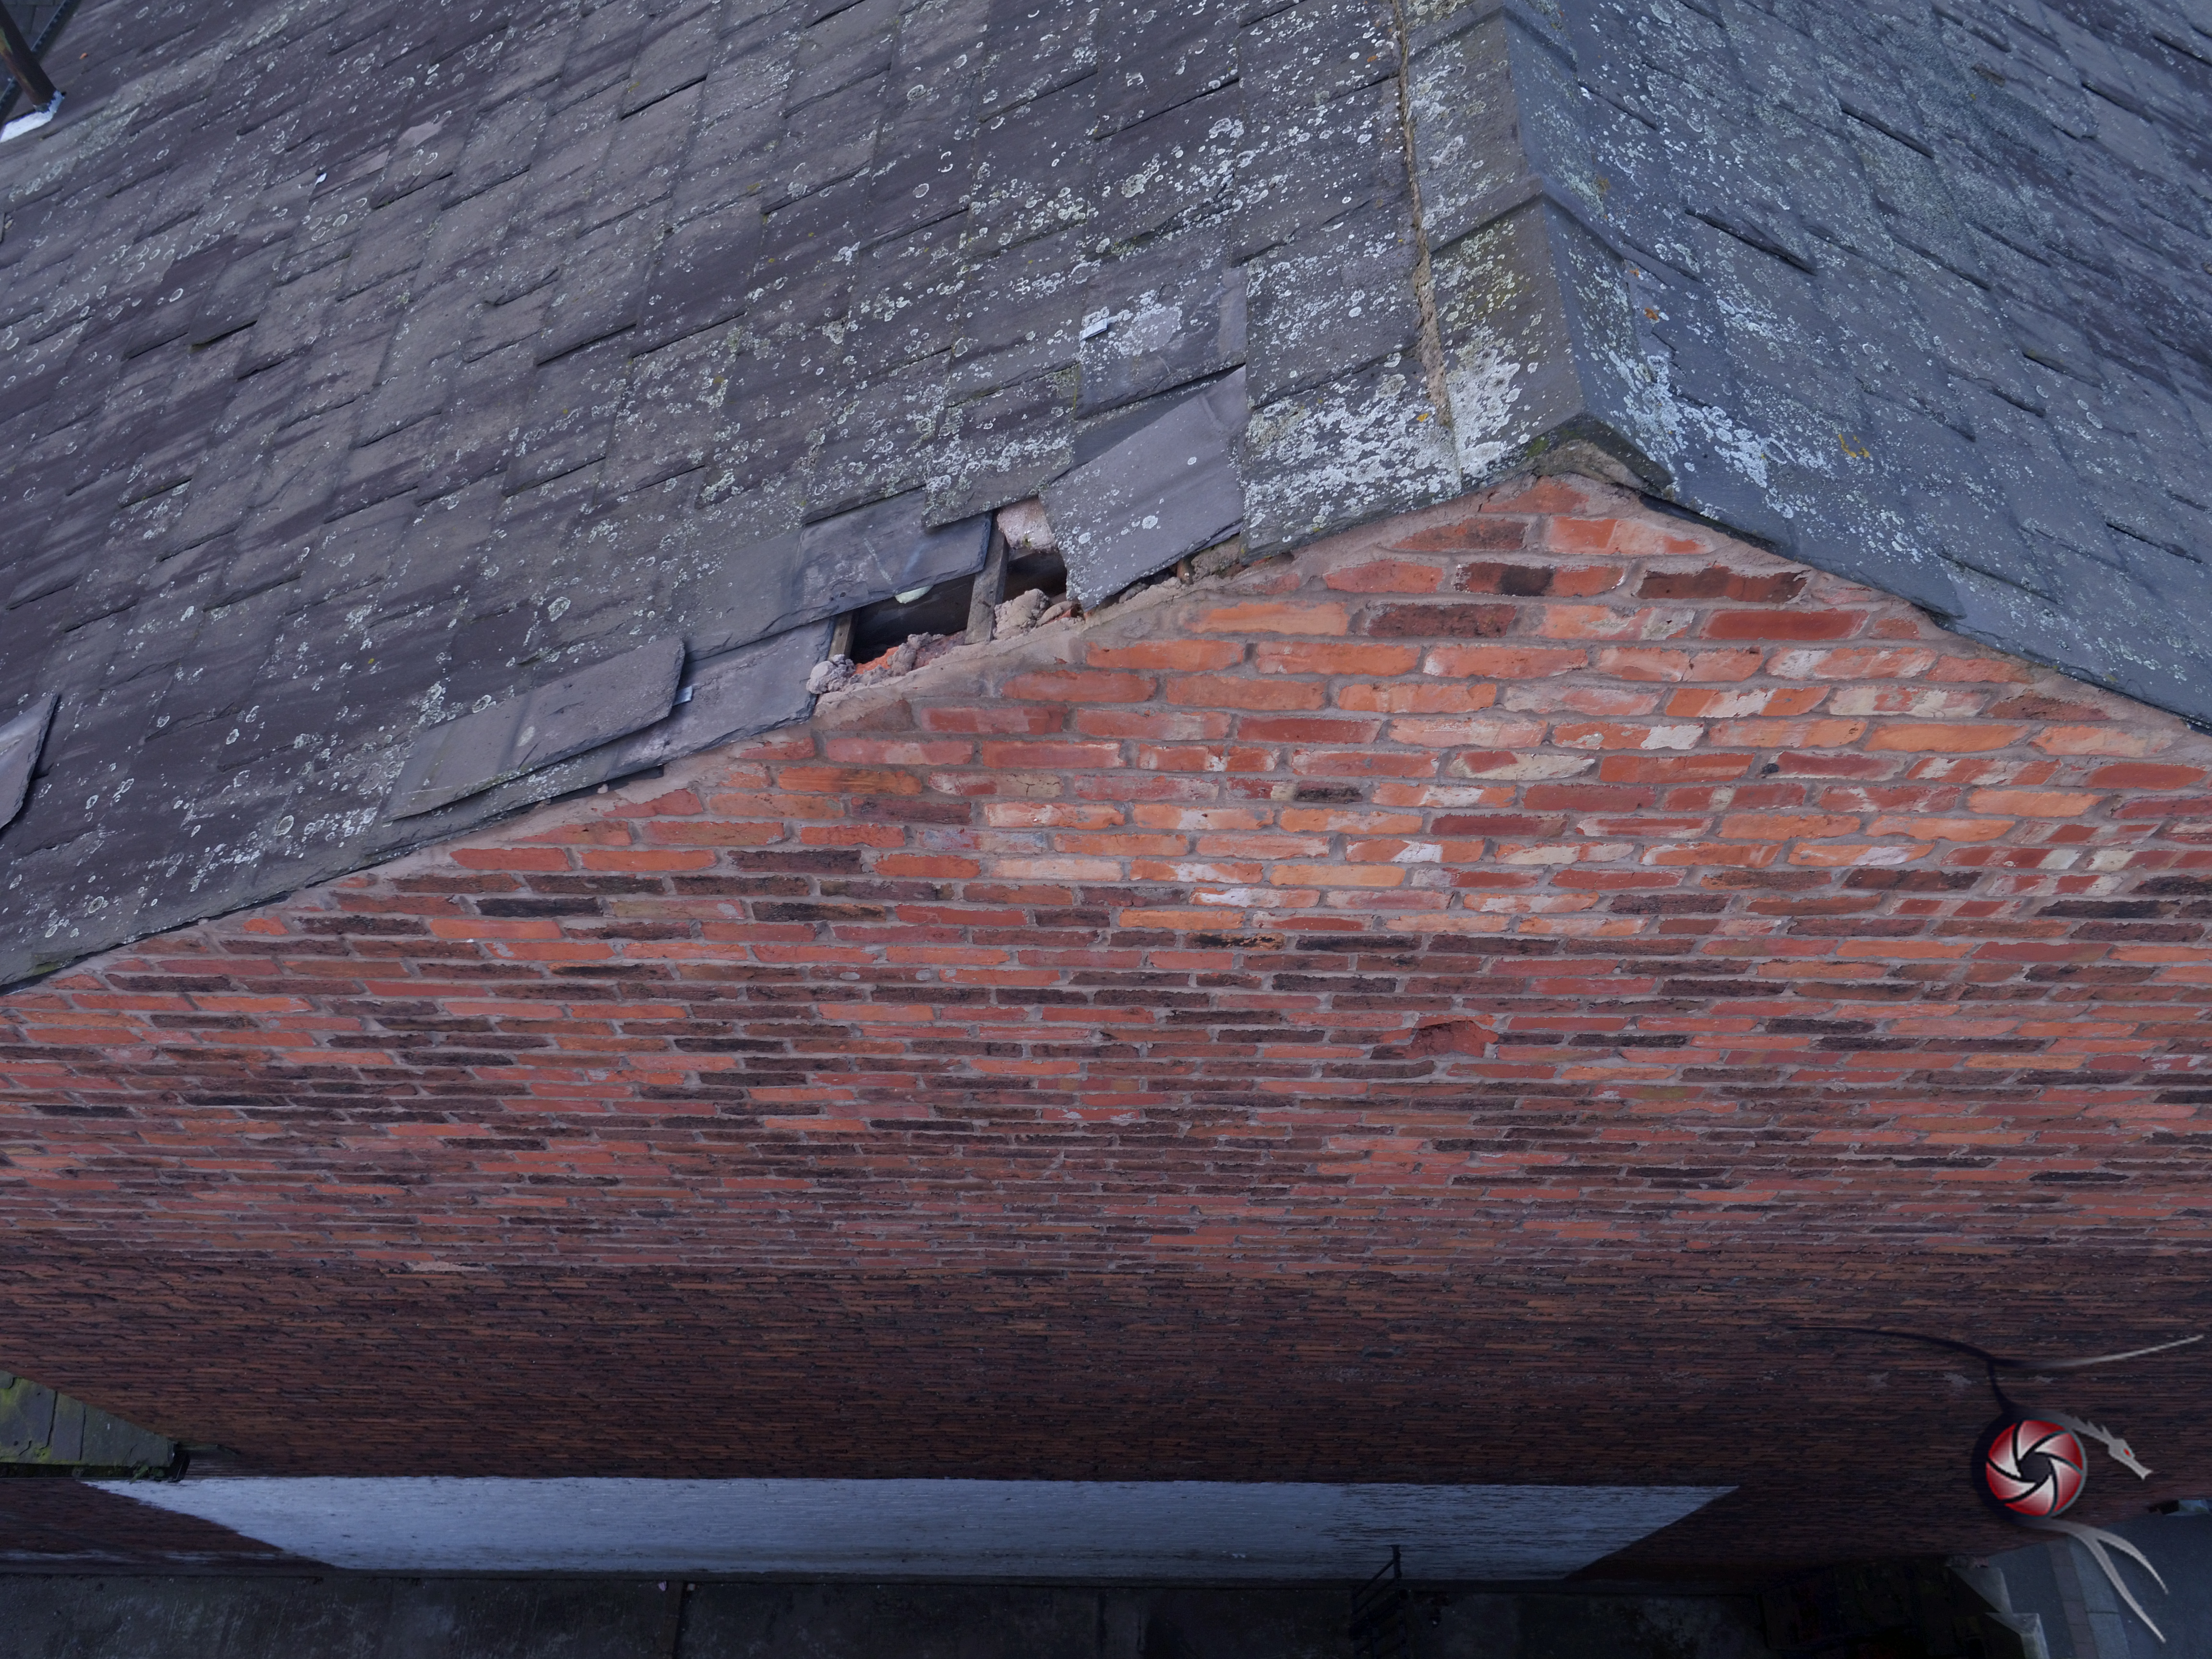 Drone survey of damaged roof